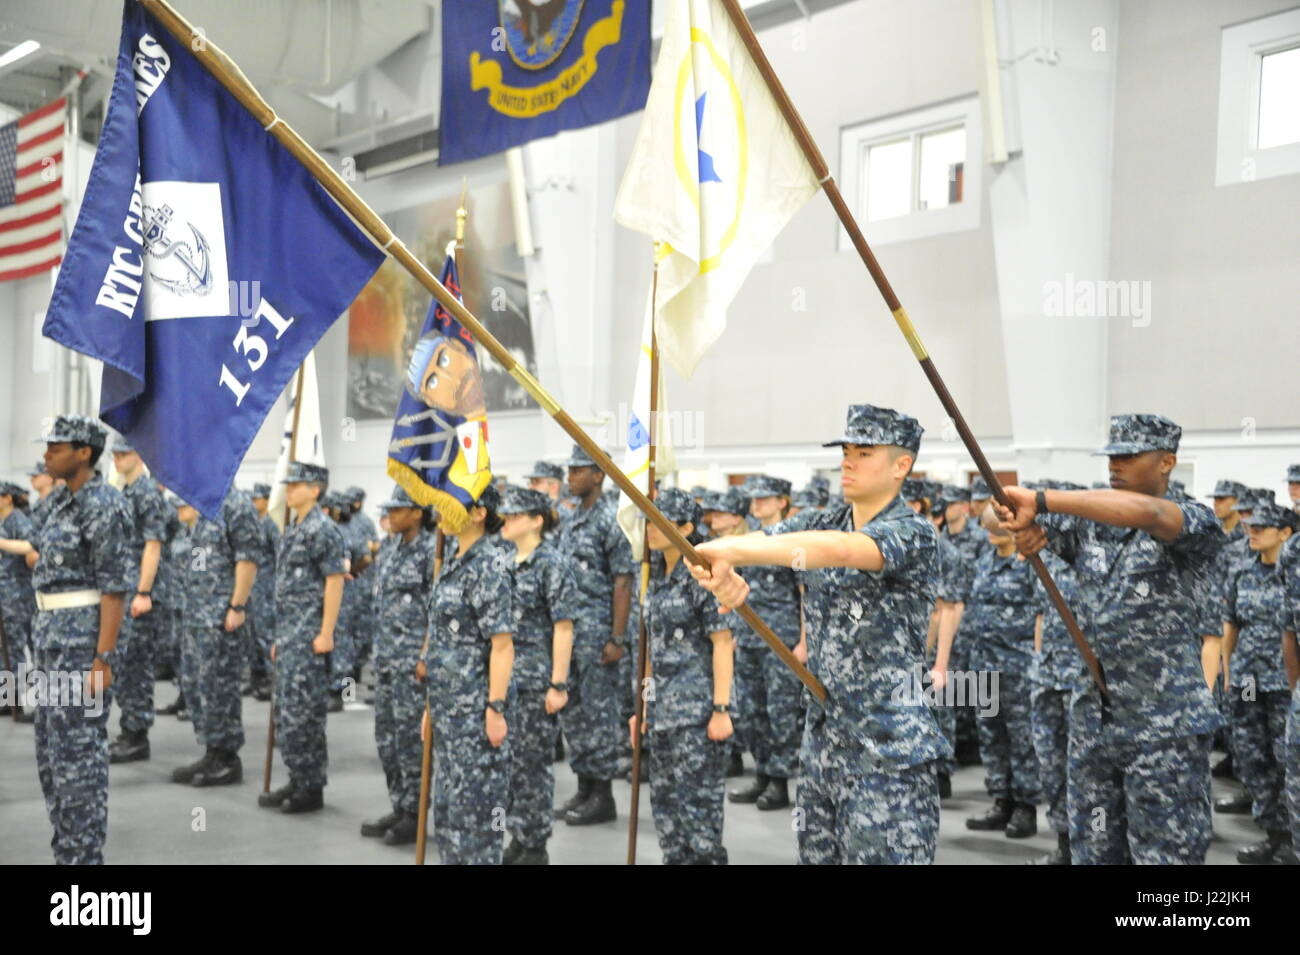 170419-N-CM124-007  GREAT LAKES, Il. (April 19, 2017)  Recruits rehearse their pass-in-review graduation ceremony - Stock Image